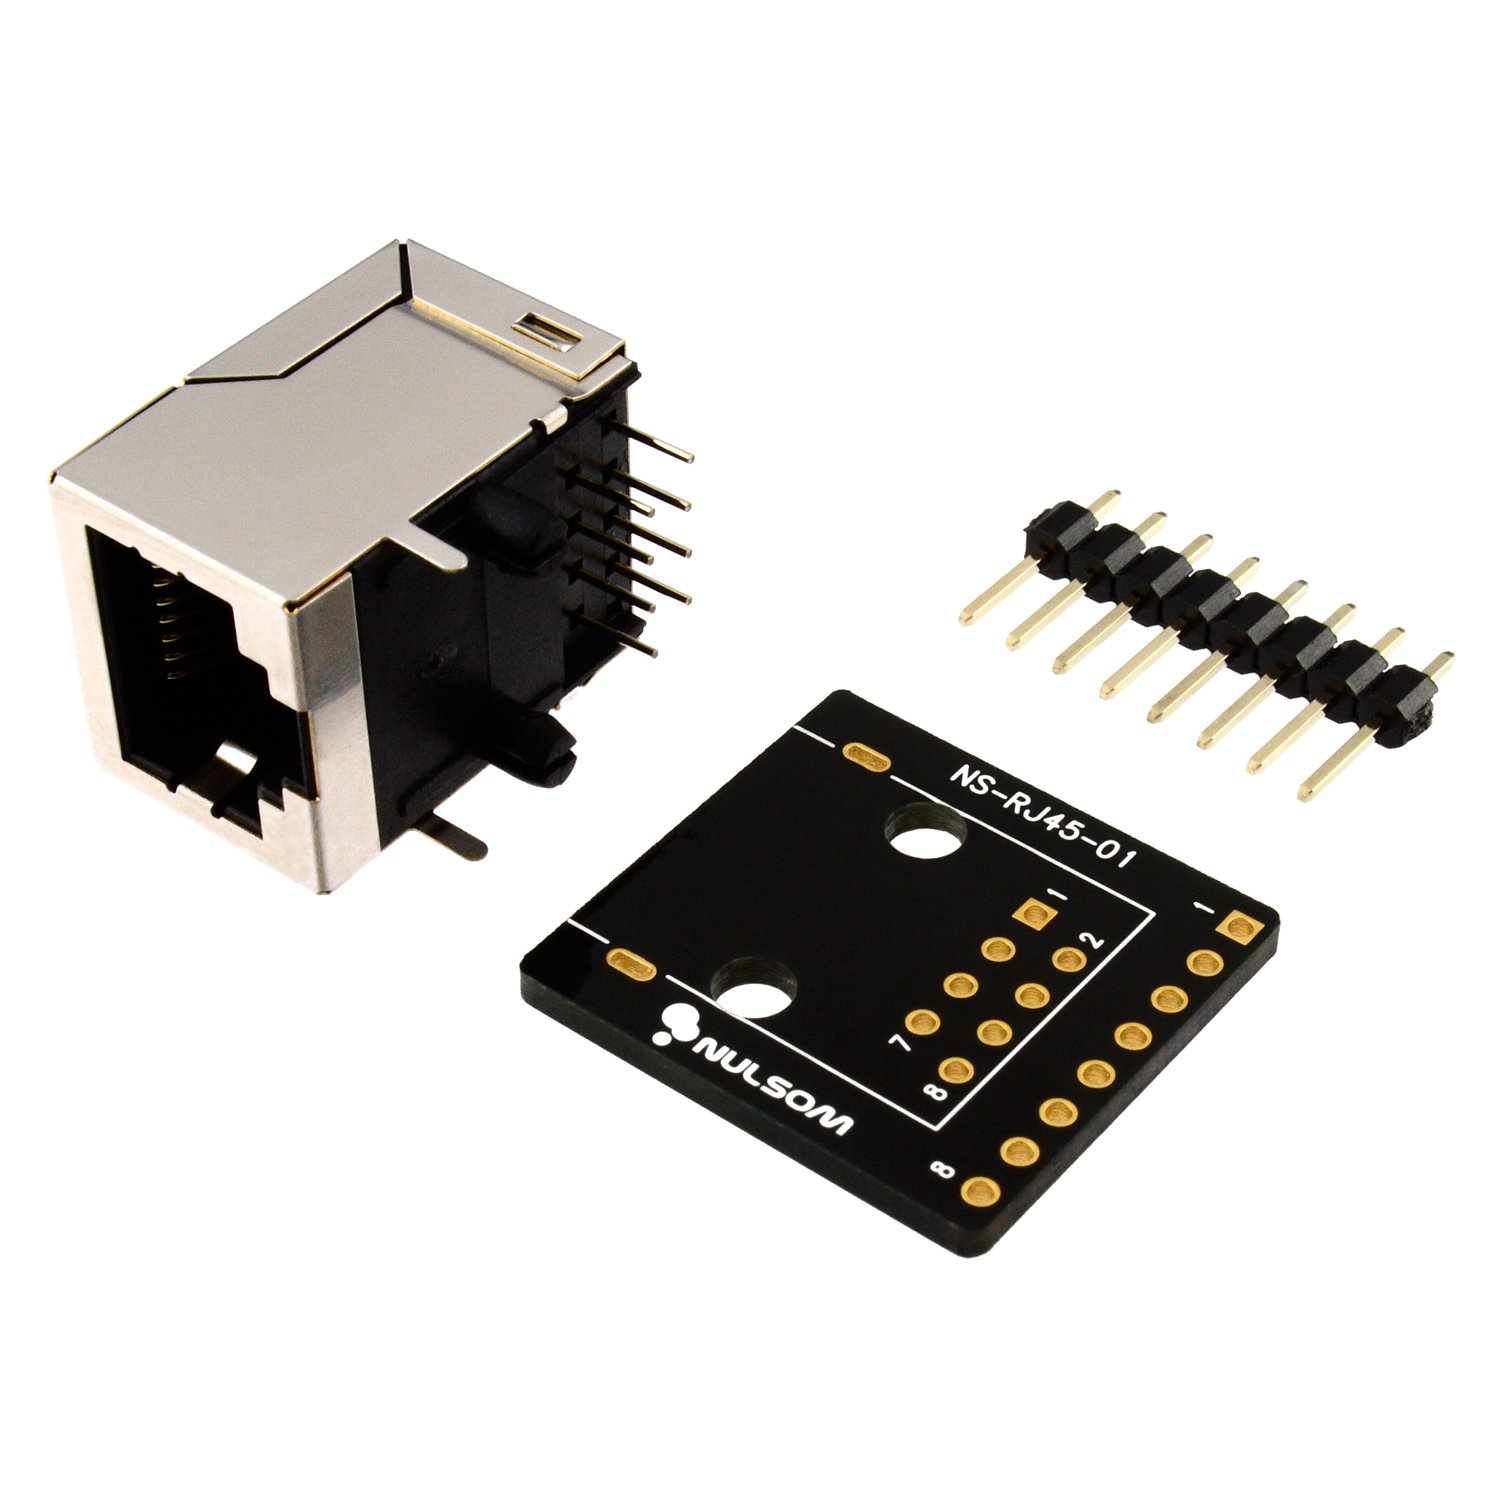 RJ45 8-pin Connector (8P8C) and Breakout Board Kit for Ethernet DMX-512 RS-485 RS-422 RS-232 (Unassambled)